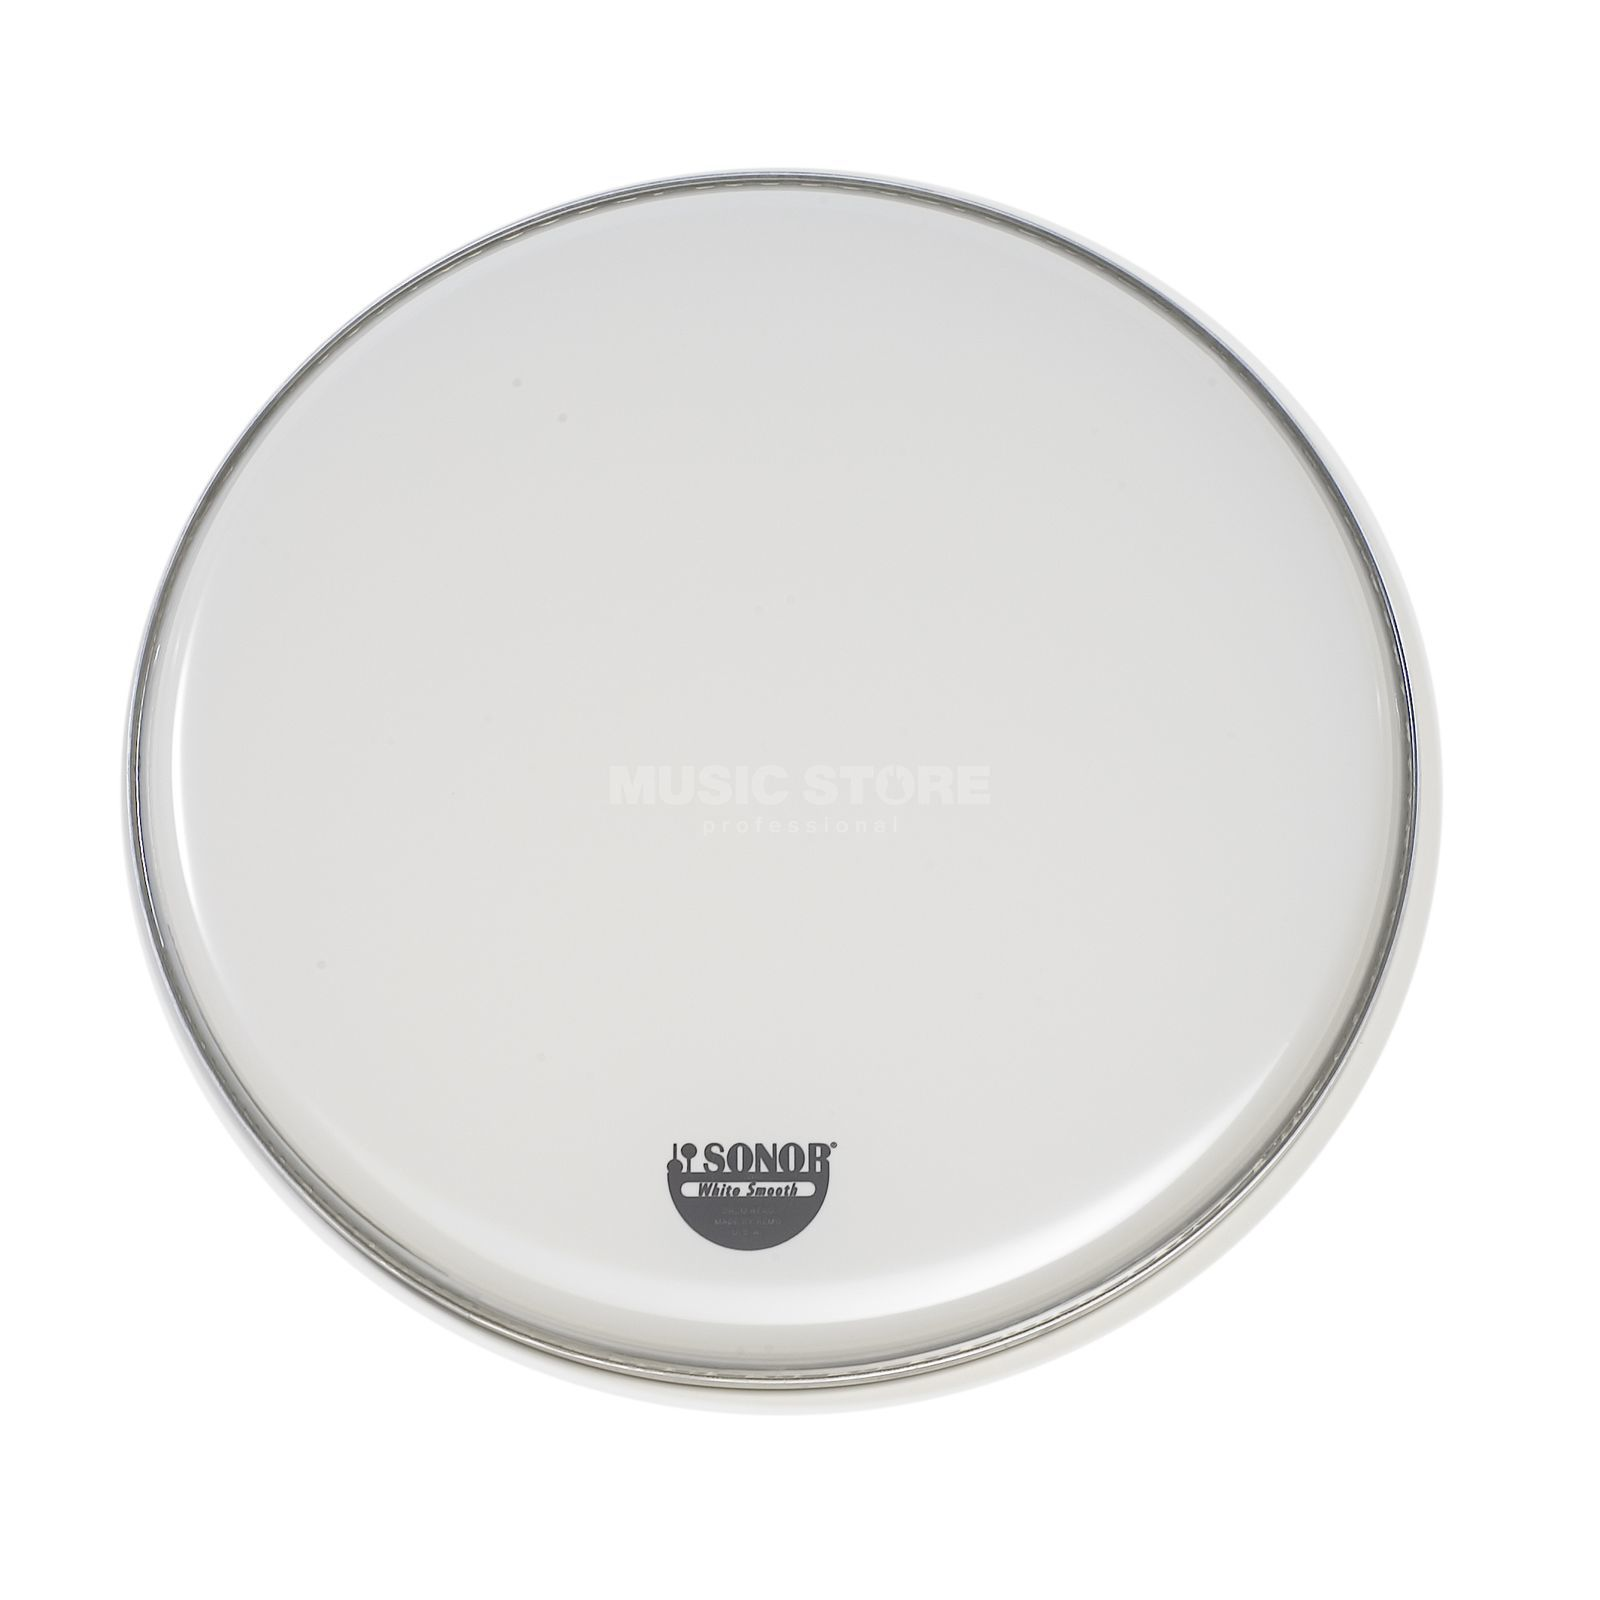 "Sonor Snare Drum Head WS 14, 14"", Marching, smooth white, 1-ply Produktbillede"